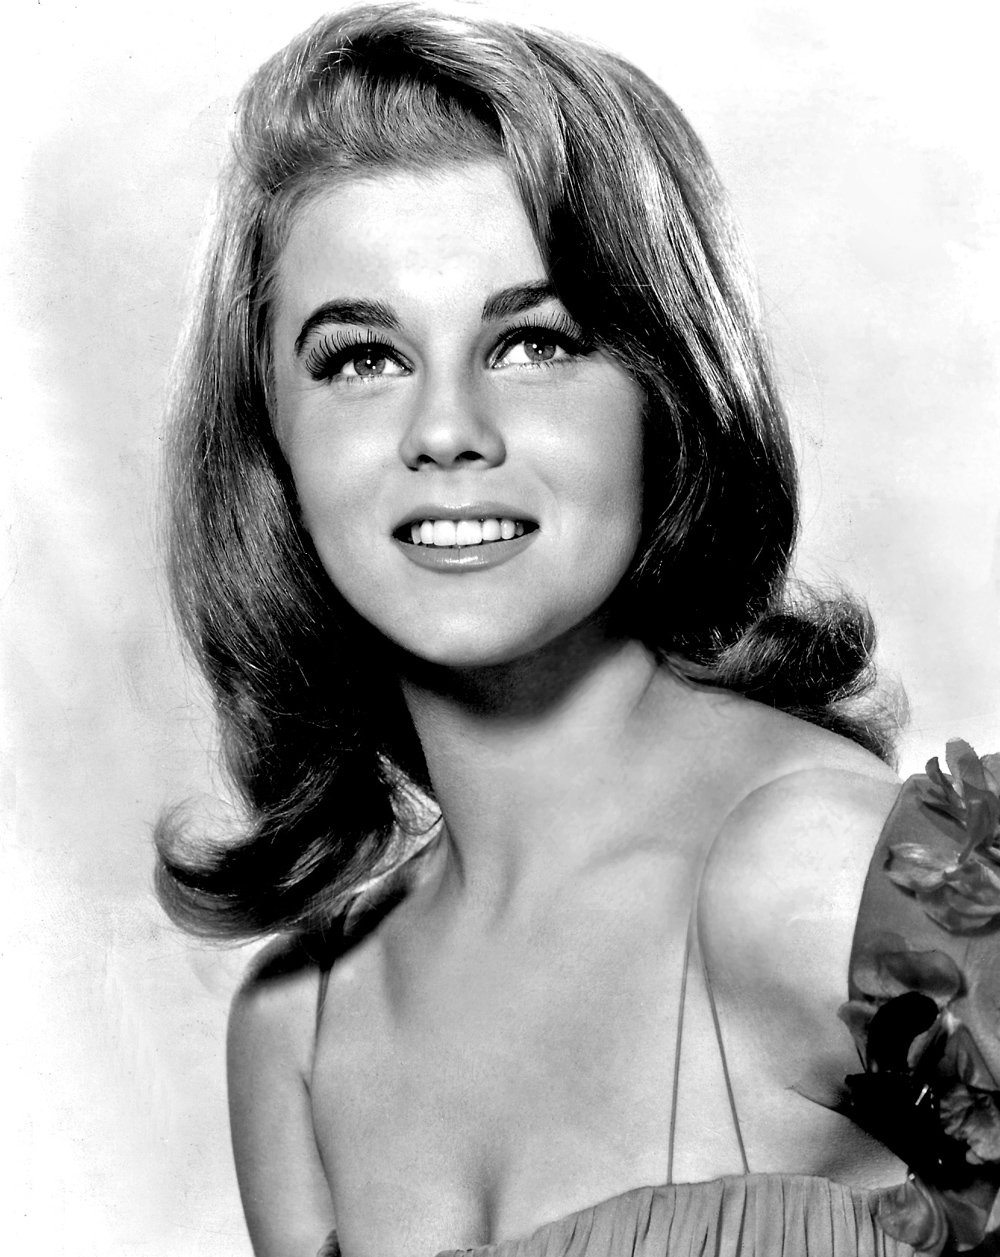 Image Source: Wikimedia Commons|Promotional photo of Ann Margret